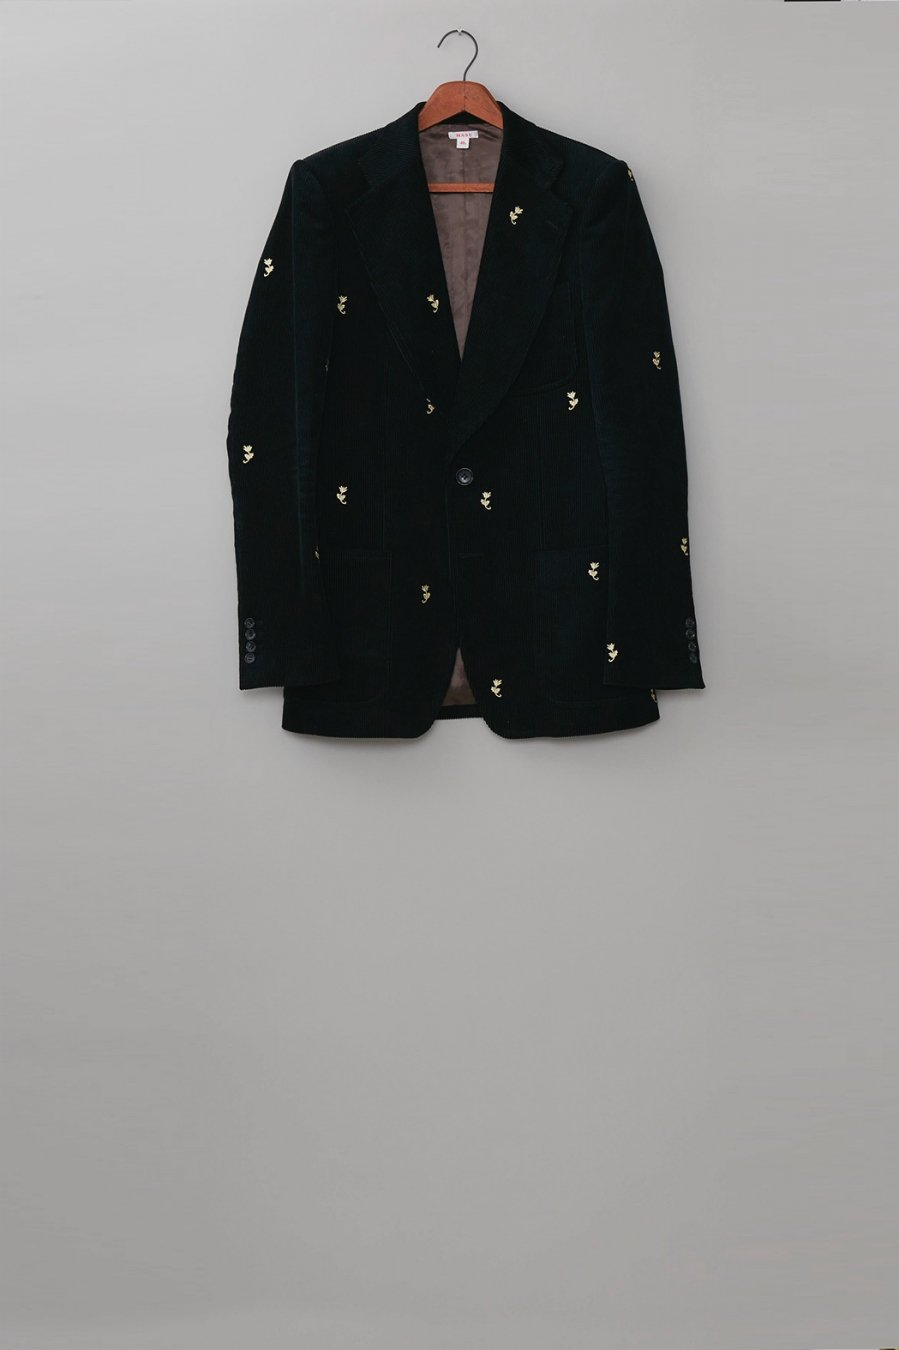 MASU  WIDE LAPEL TAILORED JACKET(BLACK)<img class='new_mark_img2' src='https://img.shop-pro.jp/img/new/icons15.gif' style='border:none;display:inline;margin:0px;padding:0px;width:auto;' />